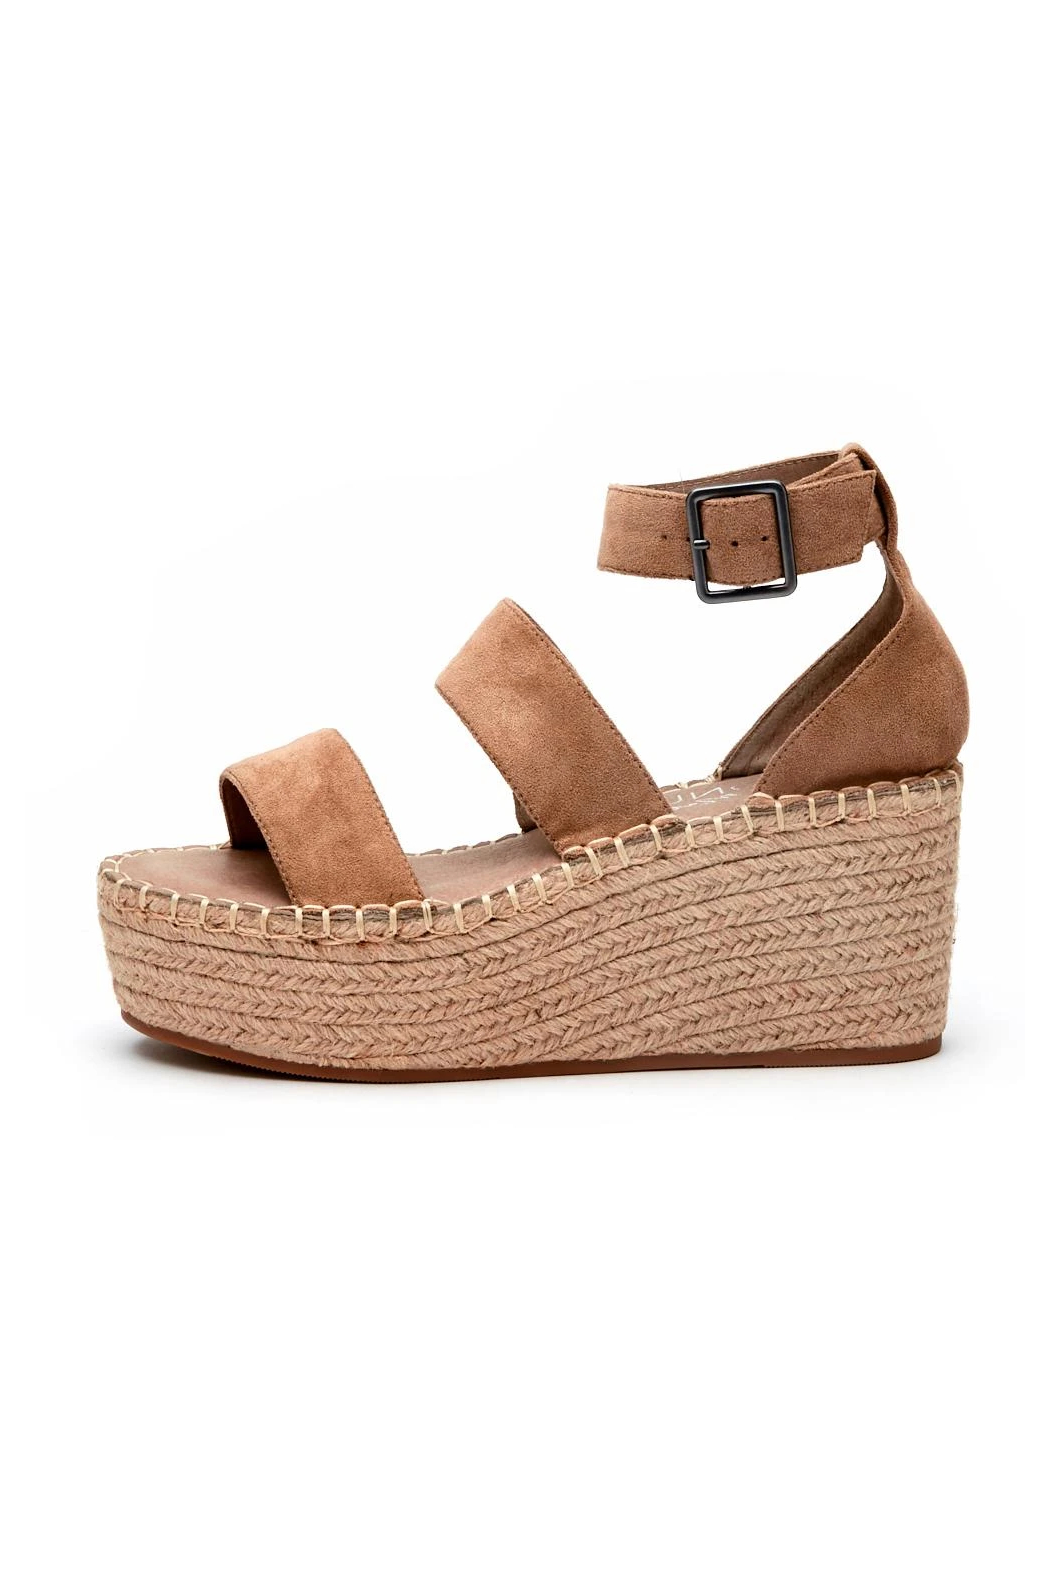 Coconuts by Matisse Soire Platform Wedge - Front Cropped Image